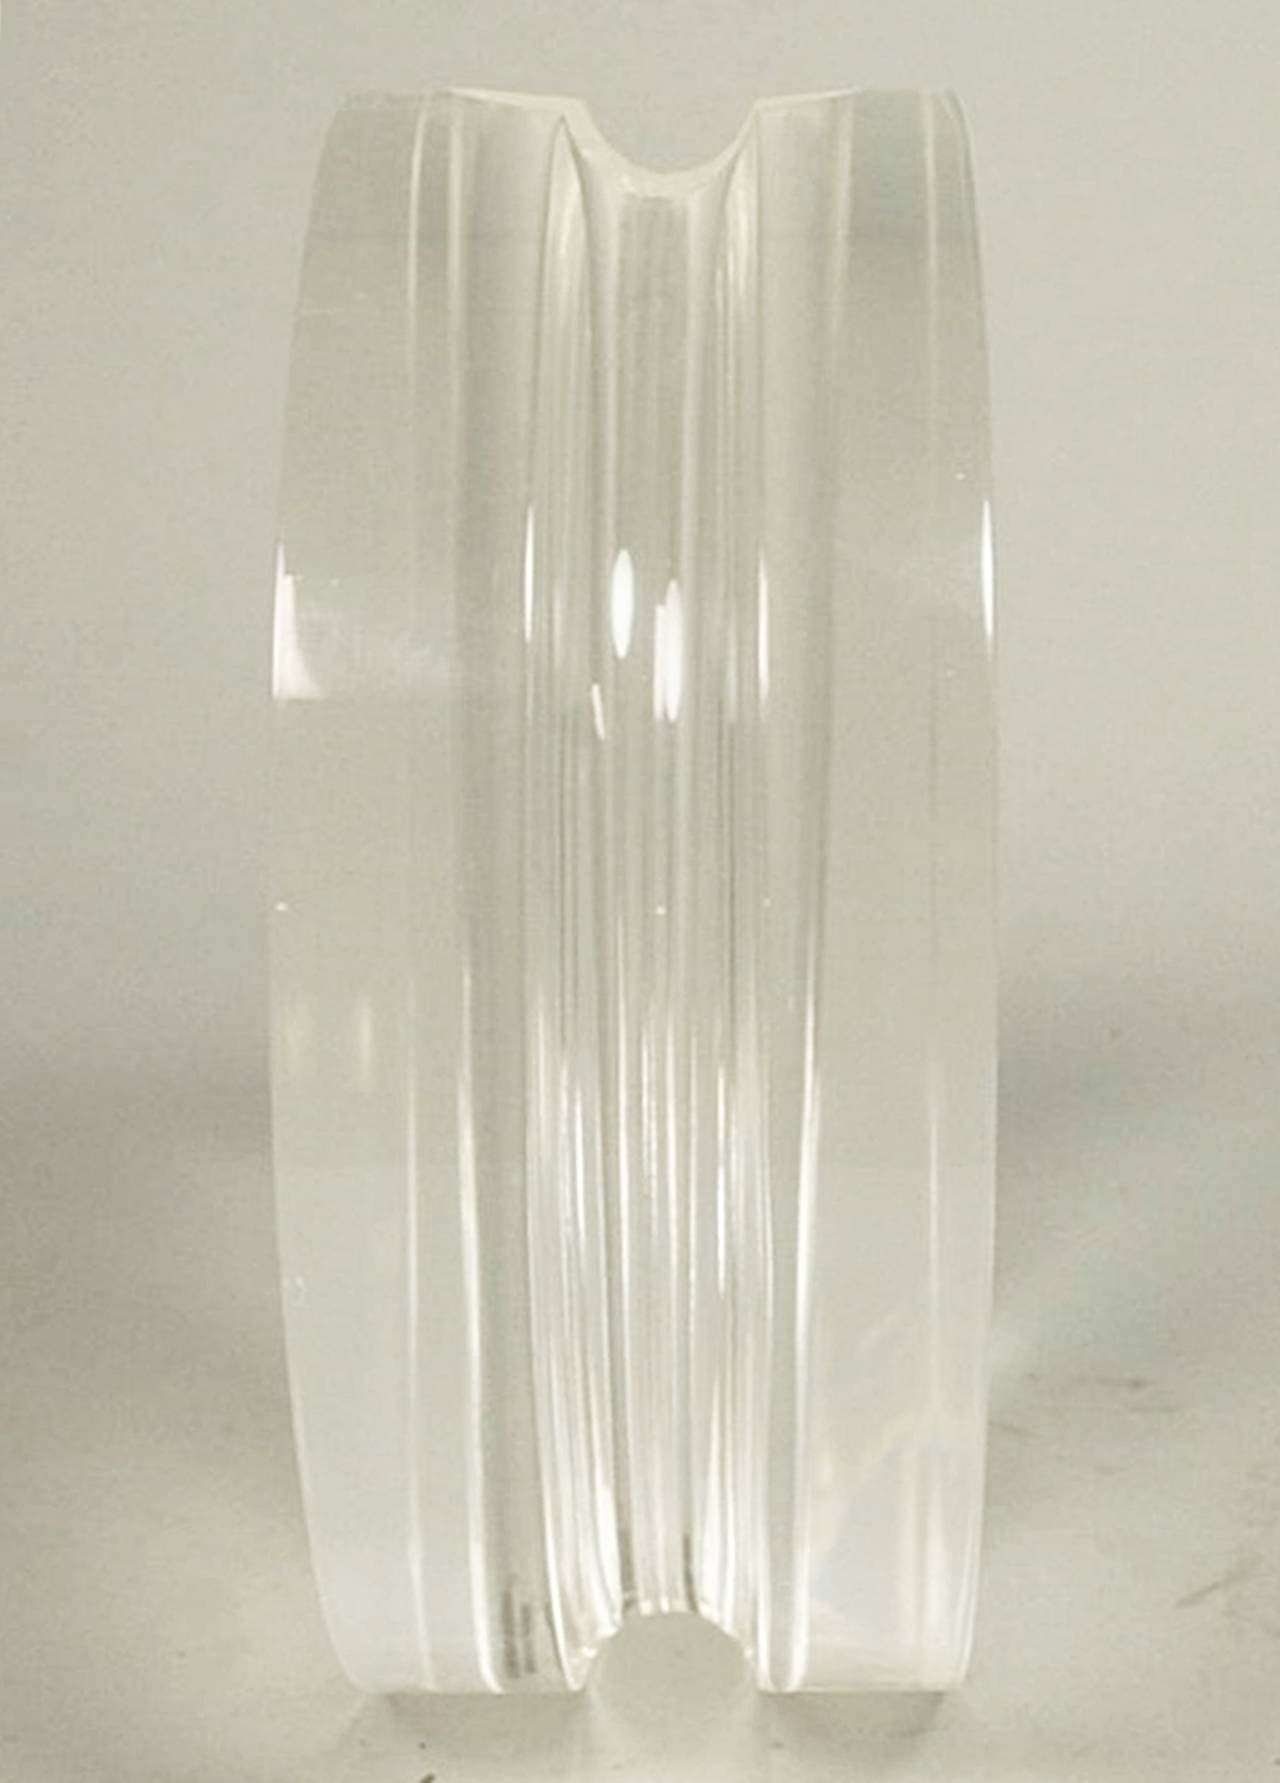 Vintage 1970s Lucite vase designed and manufactured by Charles Hollis Jones. The piece is beautifully crafted in one piece of 3 1/2